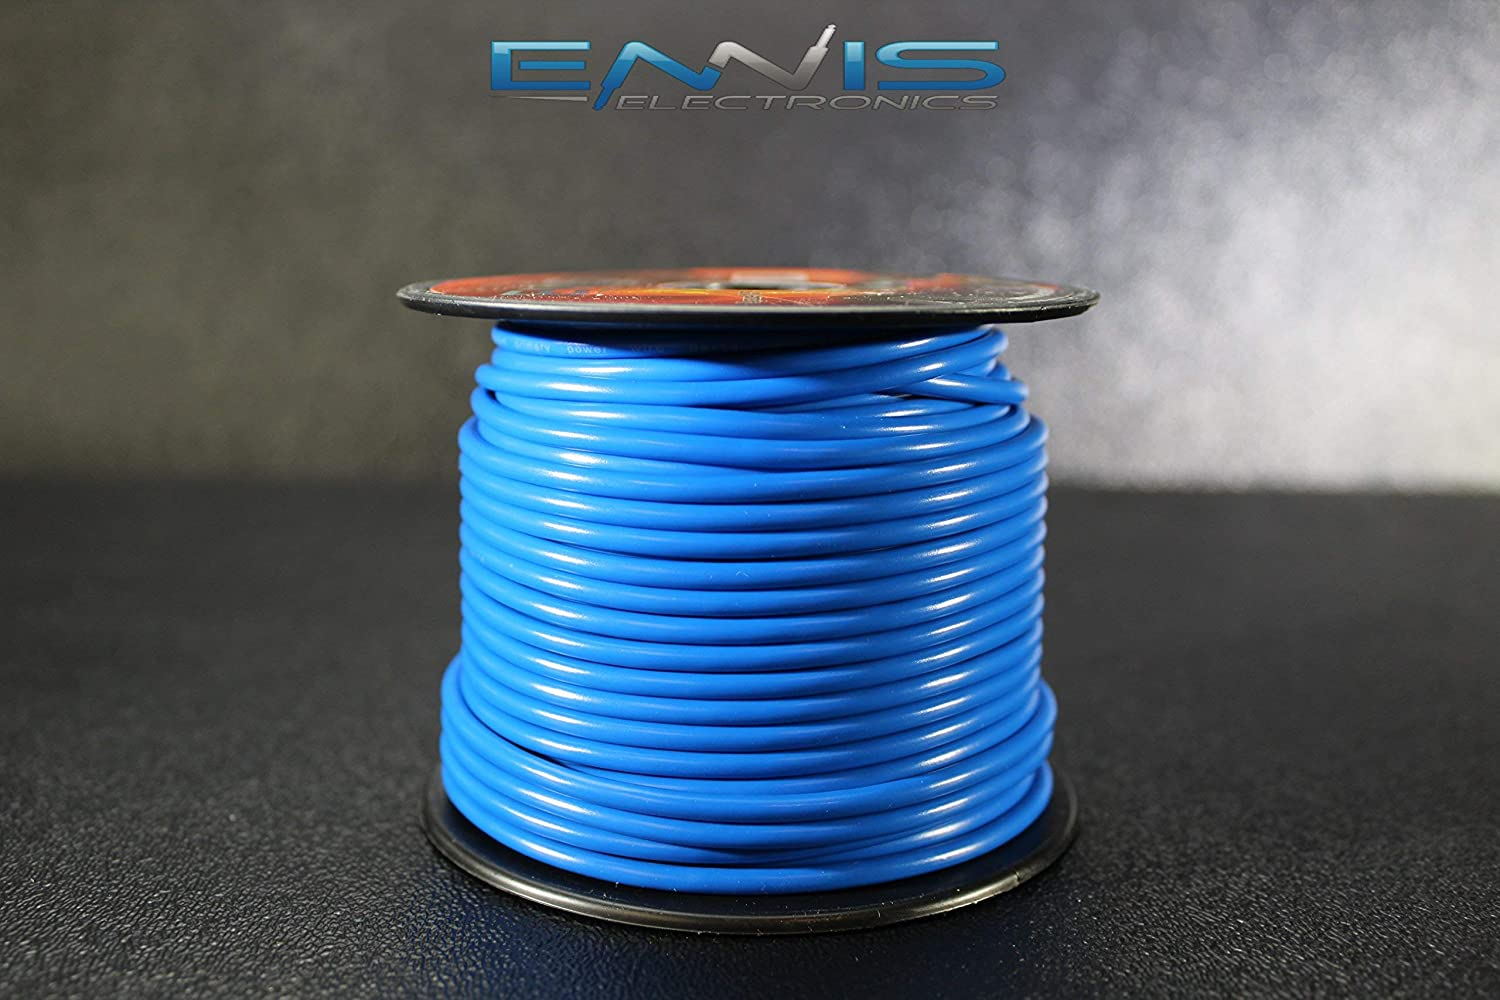 14 GAUGE WIRE BLUE BY ENNIS ELECTRONICS 100 FT SPOOL PRIMARY AUTOMOTIVE AWG COPPER CLAD